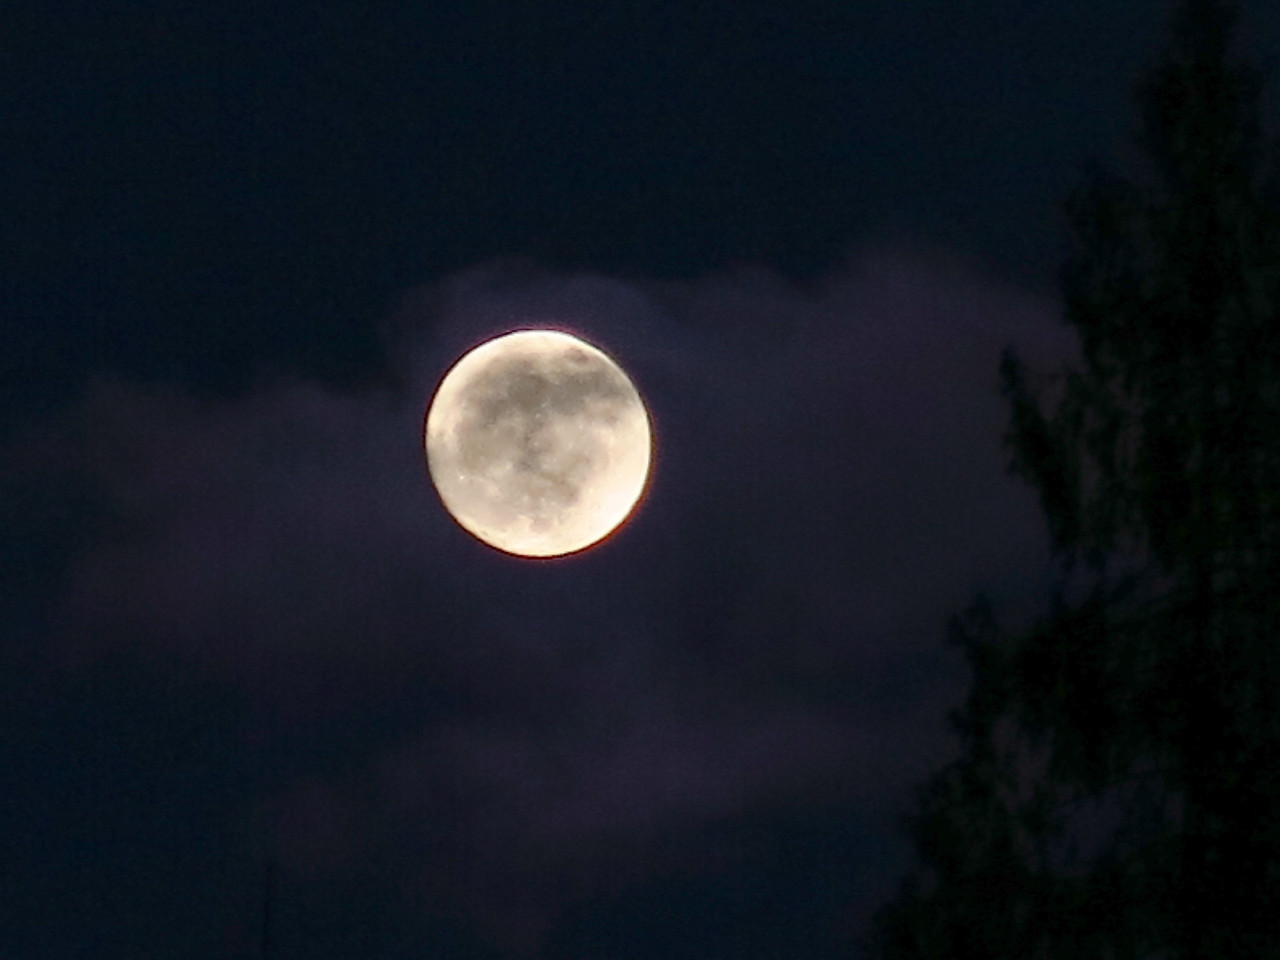 A break in the clouds allows us to see the moon on January 25.